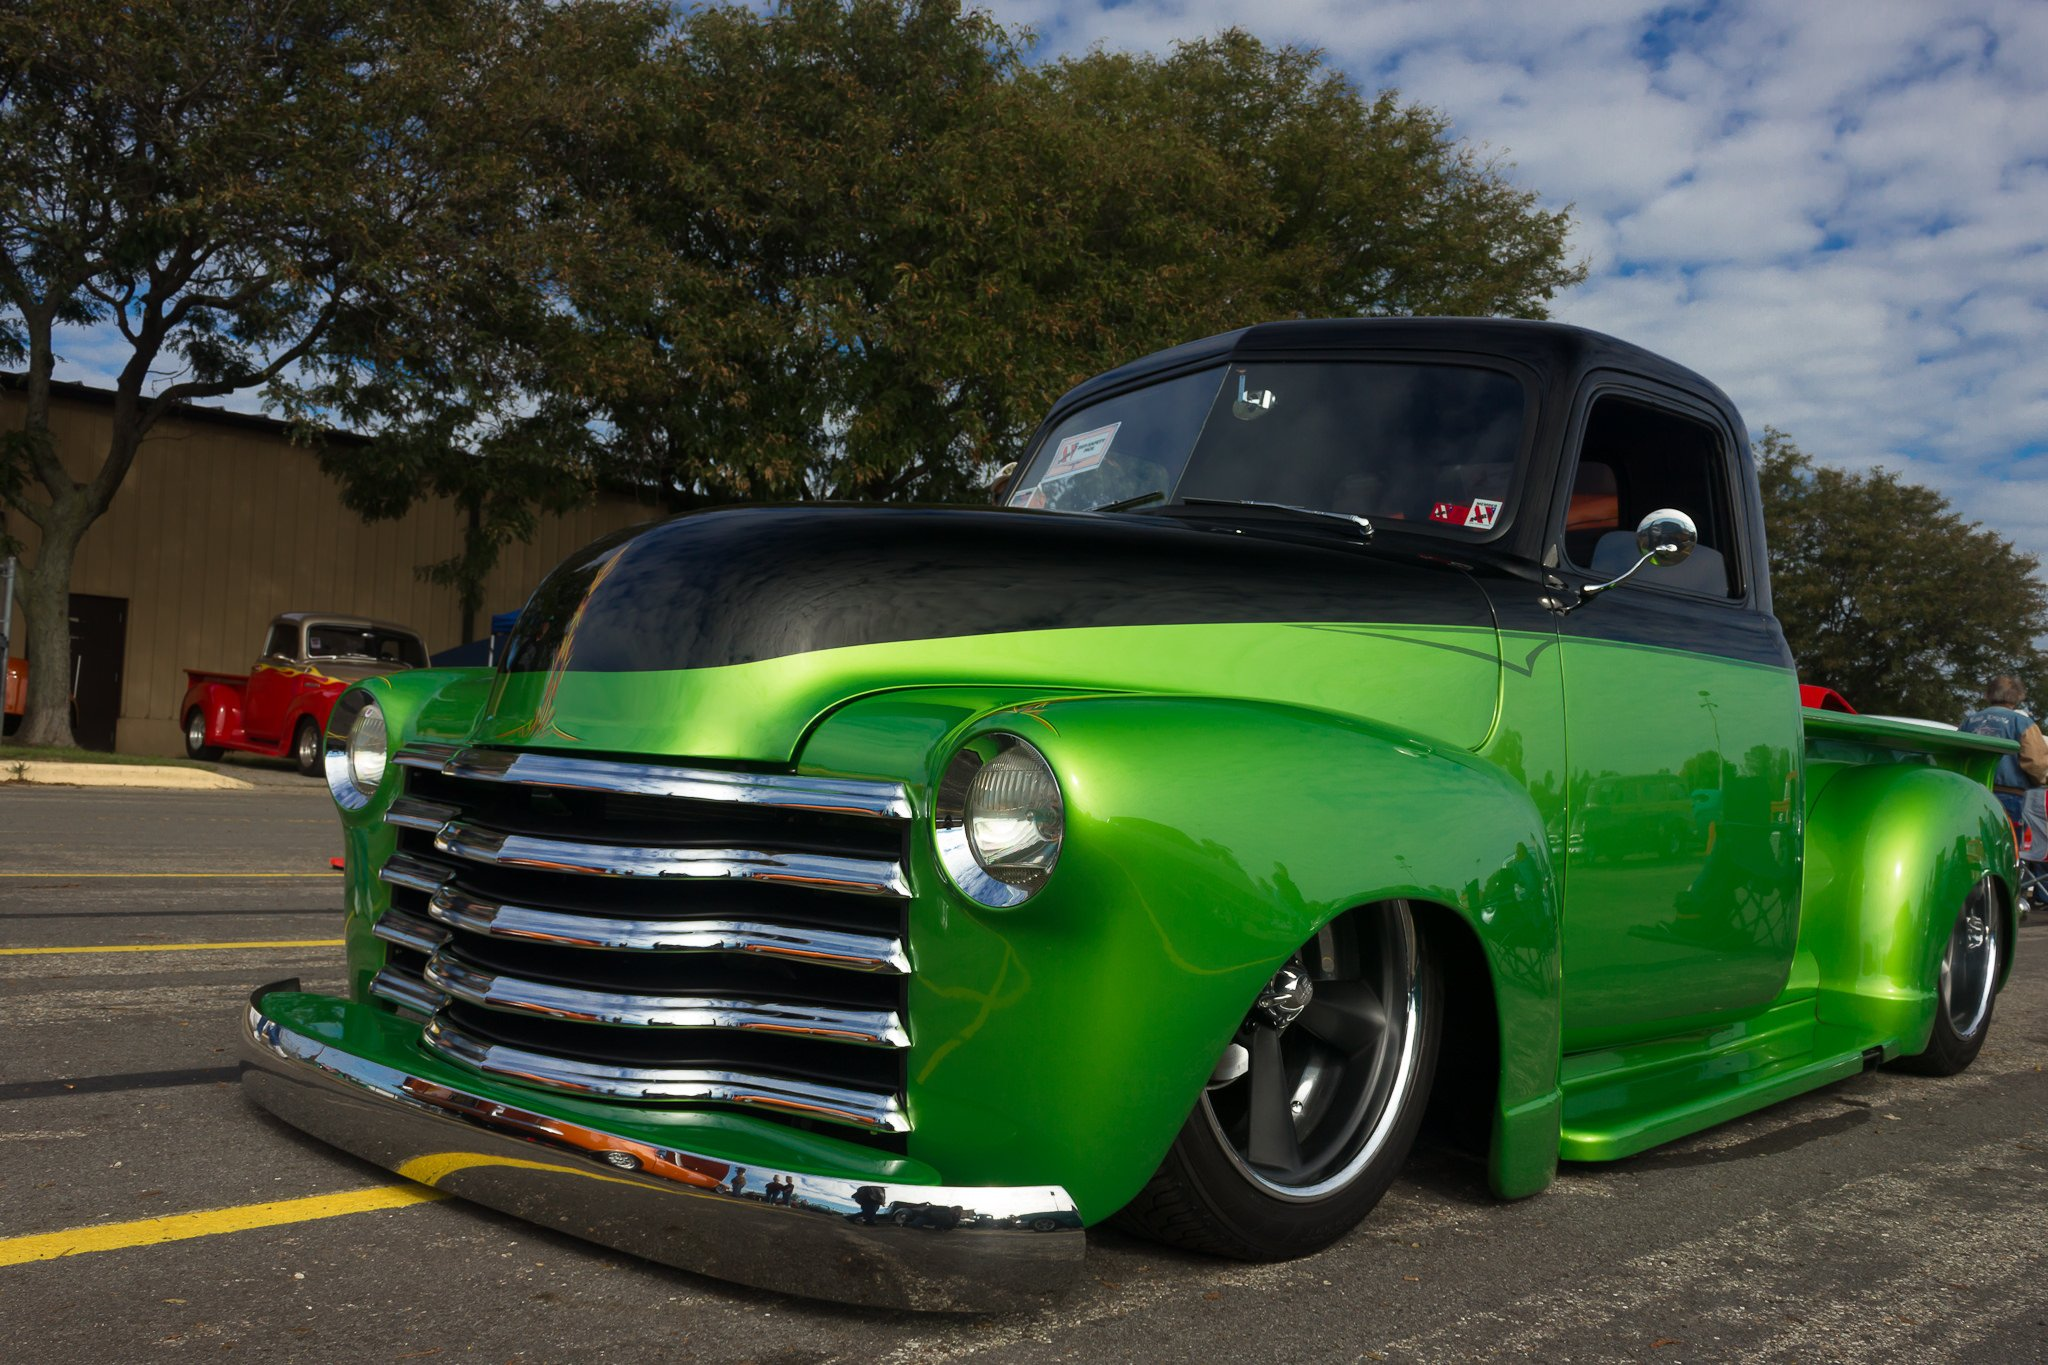 Old Chevy Truck >> Chevrolet chevy old classic custom cars truck Pickup wallpaper   2048x1365   678460   WallpaperUP